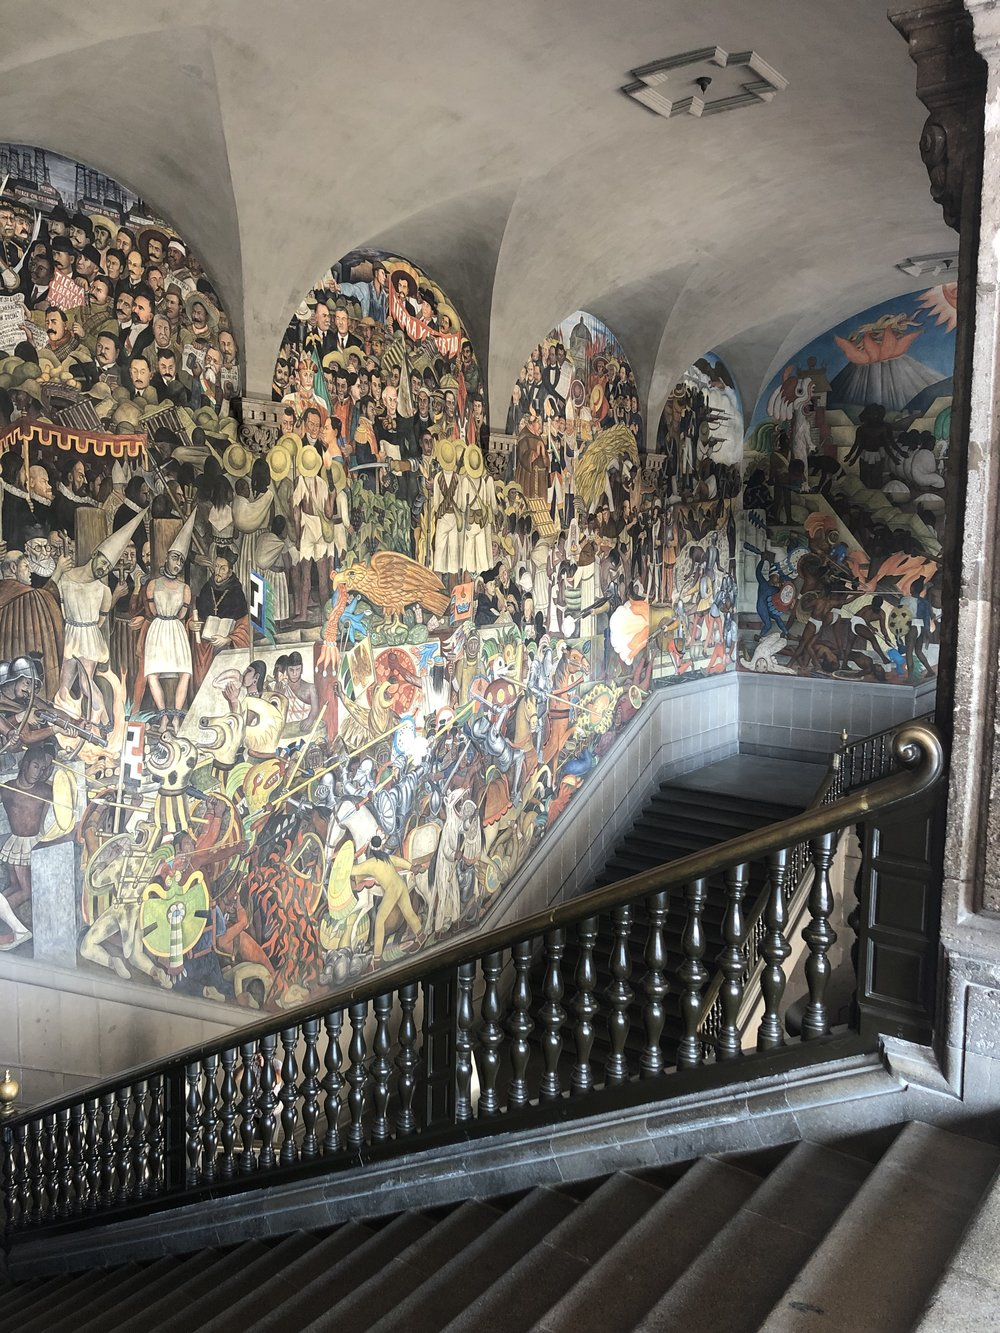 World famous murals by Diego Rivera inside the National Palace.